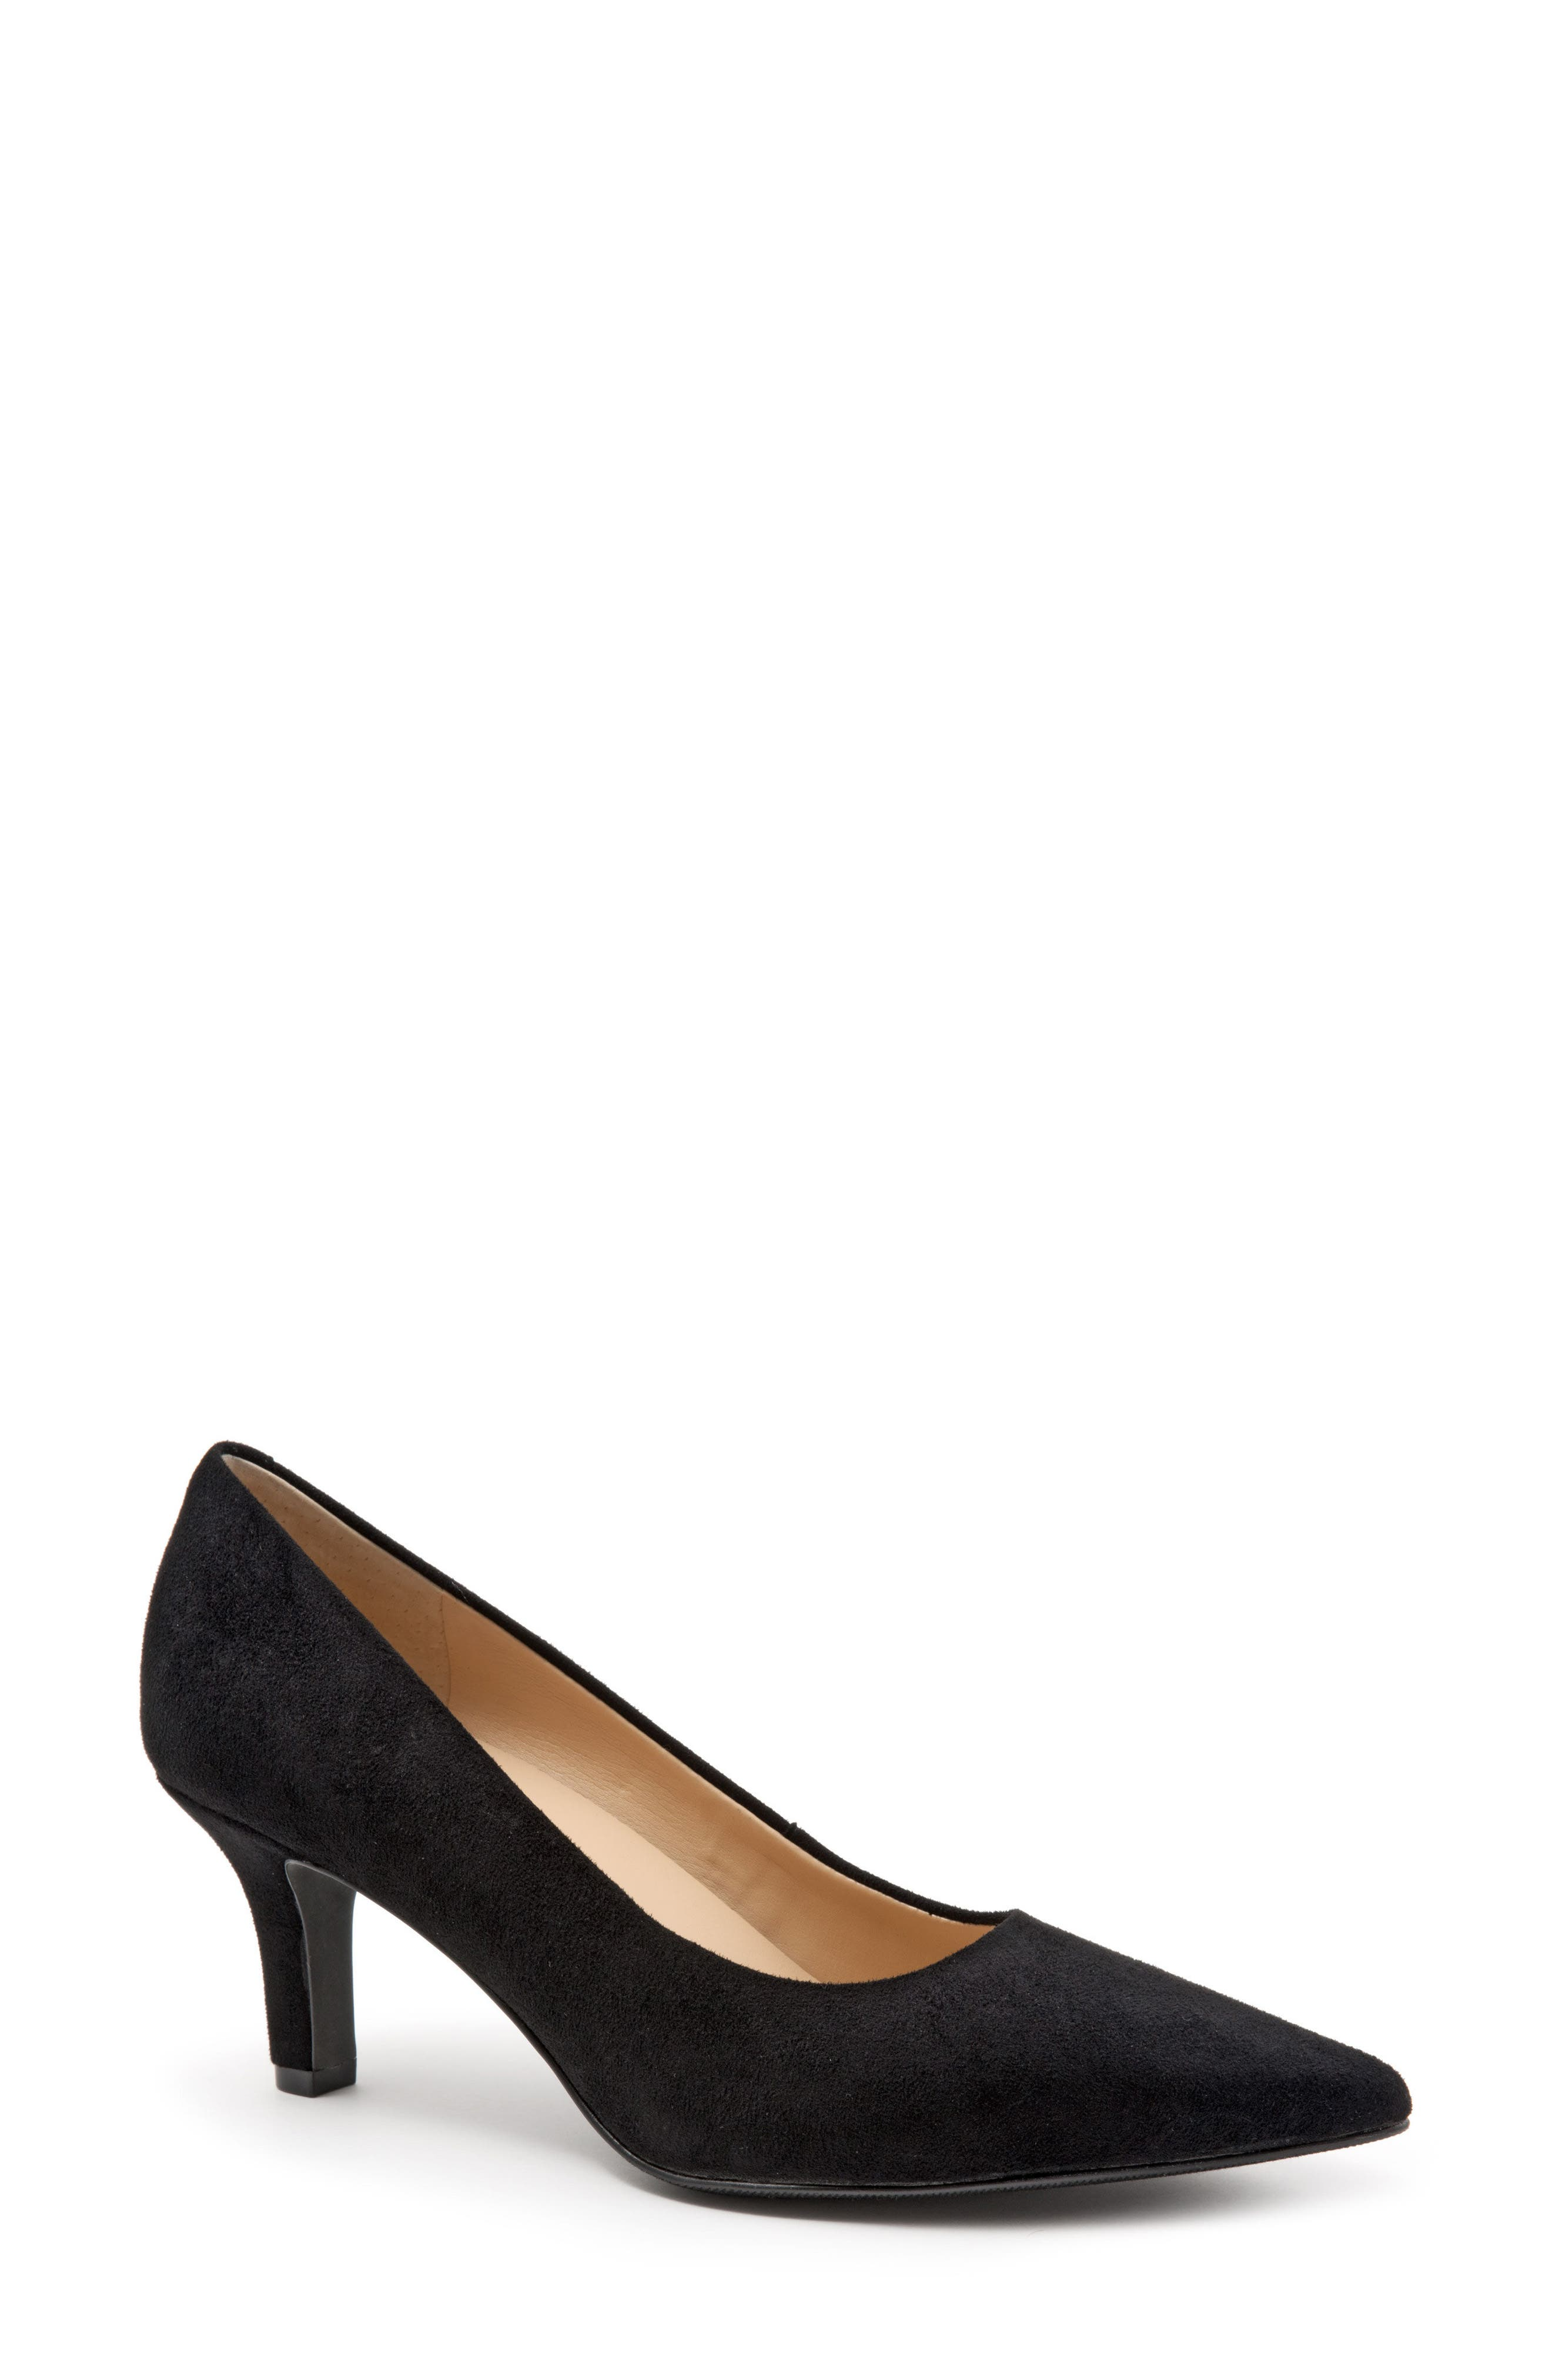 TROTTERS Noelle Pointy Toe Pump, Main, color, BLACK FABRIC